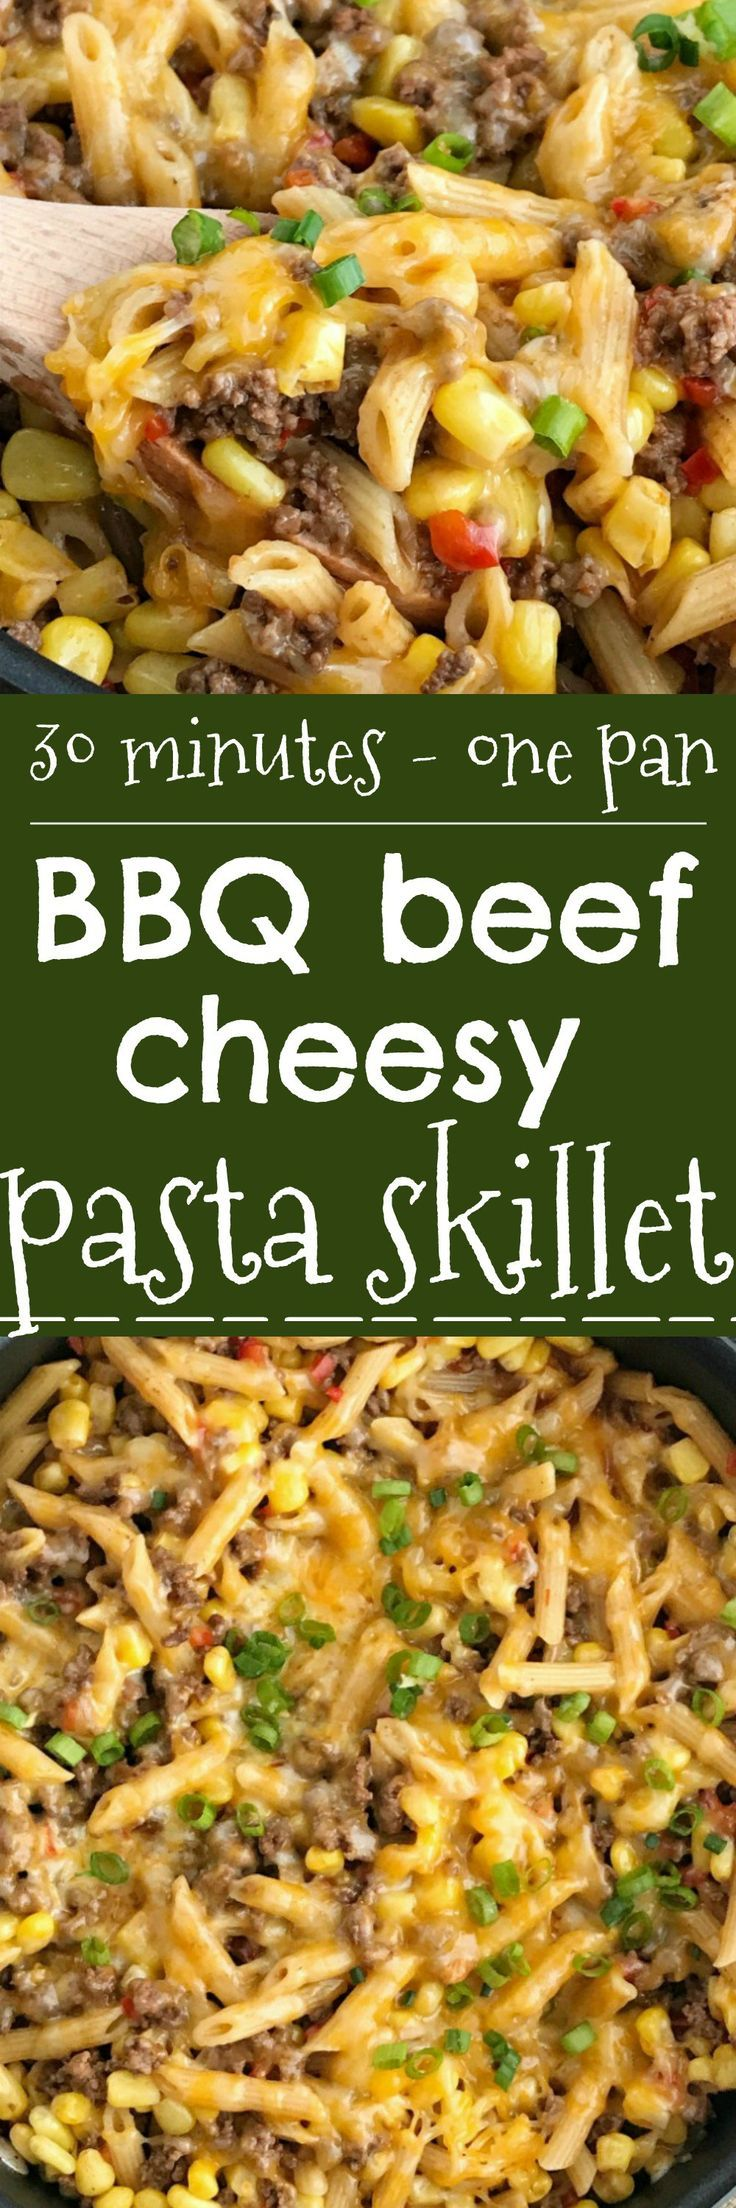 BBQ Beef Pasta Skillet | One Pan Dinner Recipe | Easy Dinner Recipe | Family Dinner Ideas | Recipes with ground beef | 30 Minute Dinner Recipes | 30 minutes, one pan is all you need for this delicious family dinner that's full of ground beef, corn, pasta, and covered in cheese